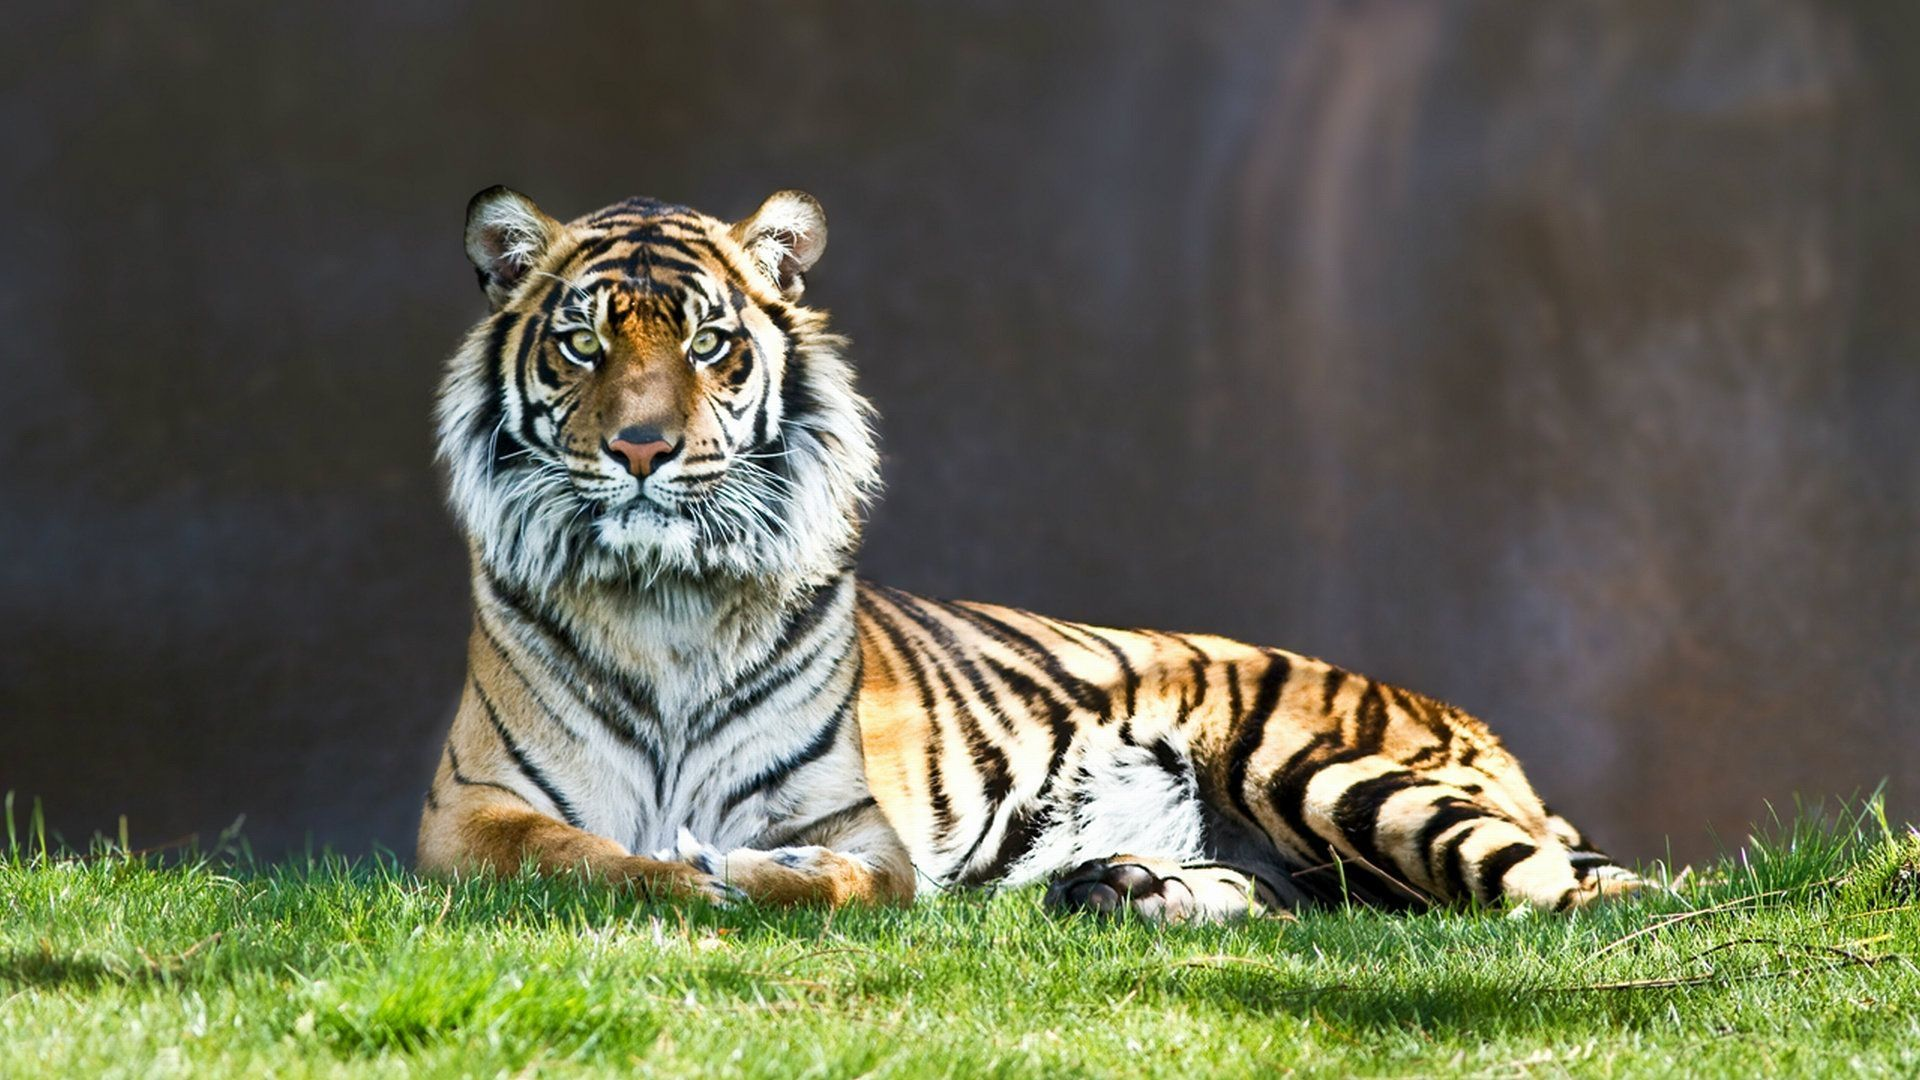 The tiger is lying on the grass, Cool Wallpaper